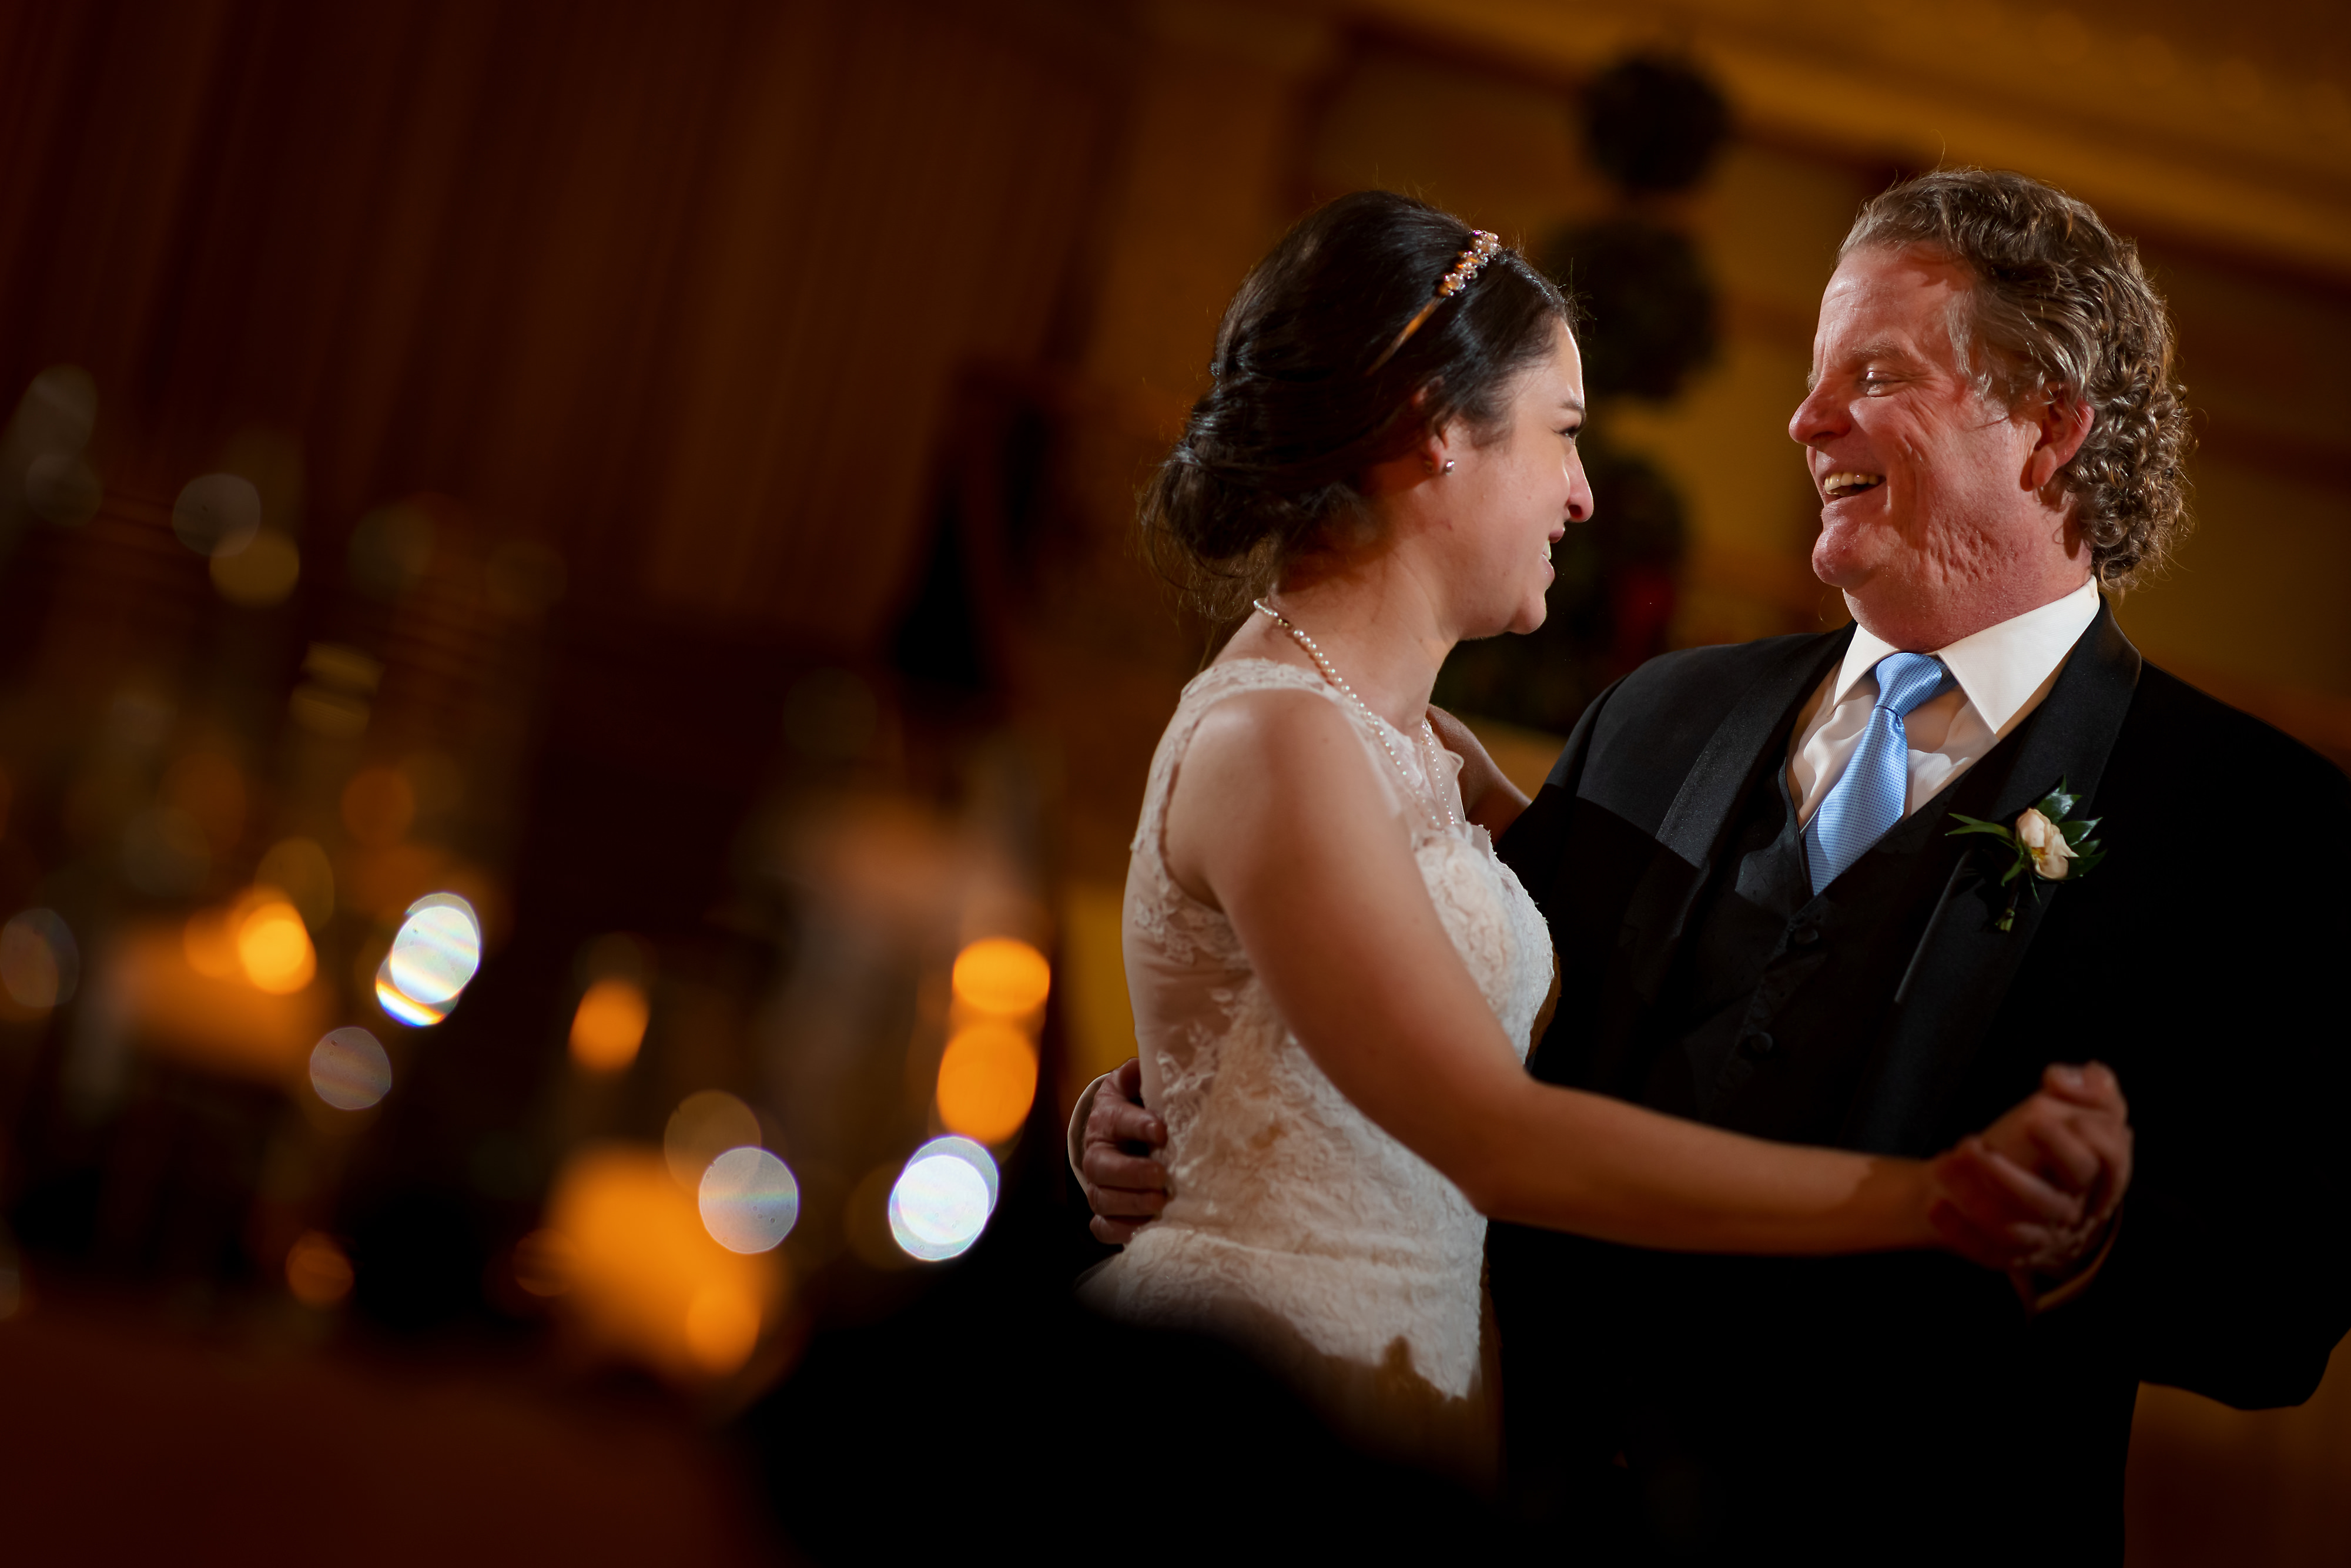 Father of the bride dances with daughter during wedding reception at the Rookery Building in Chicago